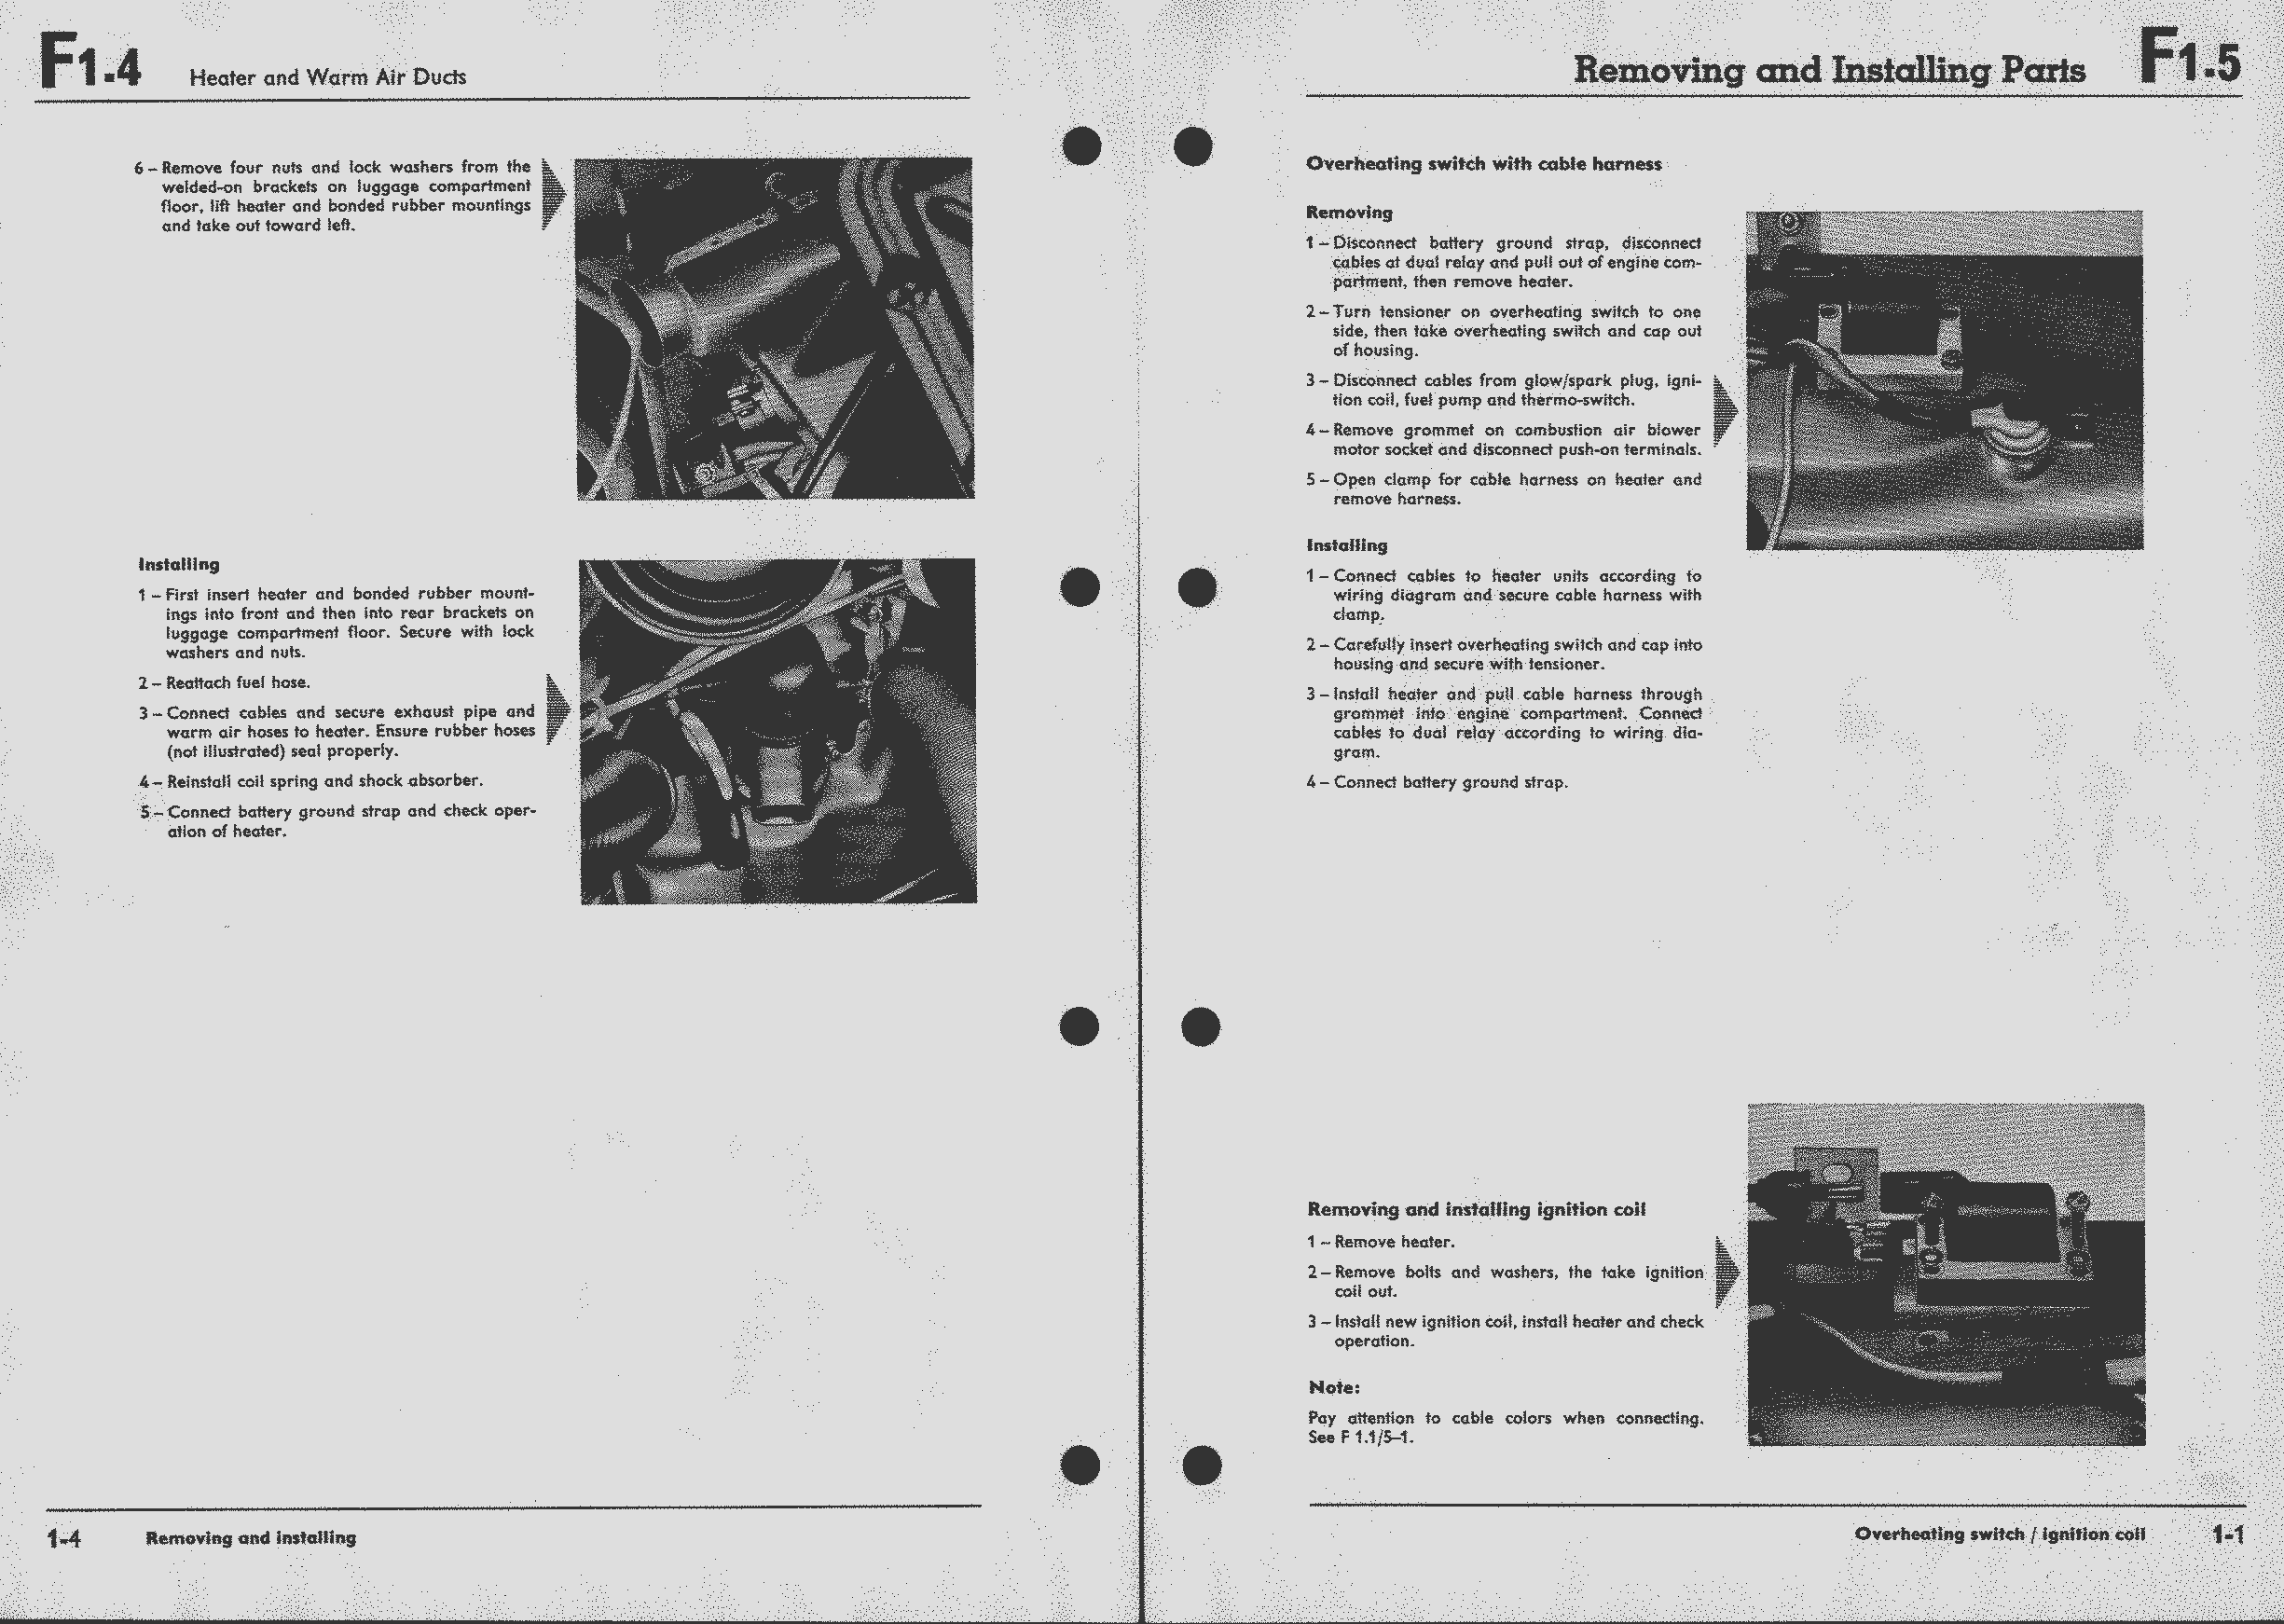 1973 Vw Super Beetle Wiring Diagram For Rear Window Defroster Air Cooled Ignition Coil Obsolete Documentation Project Workshop Manual